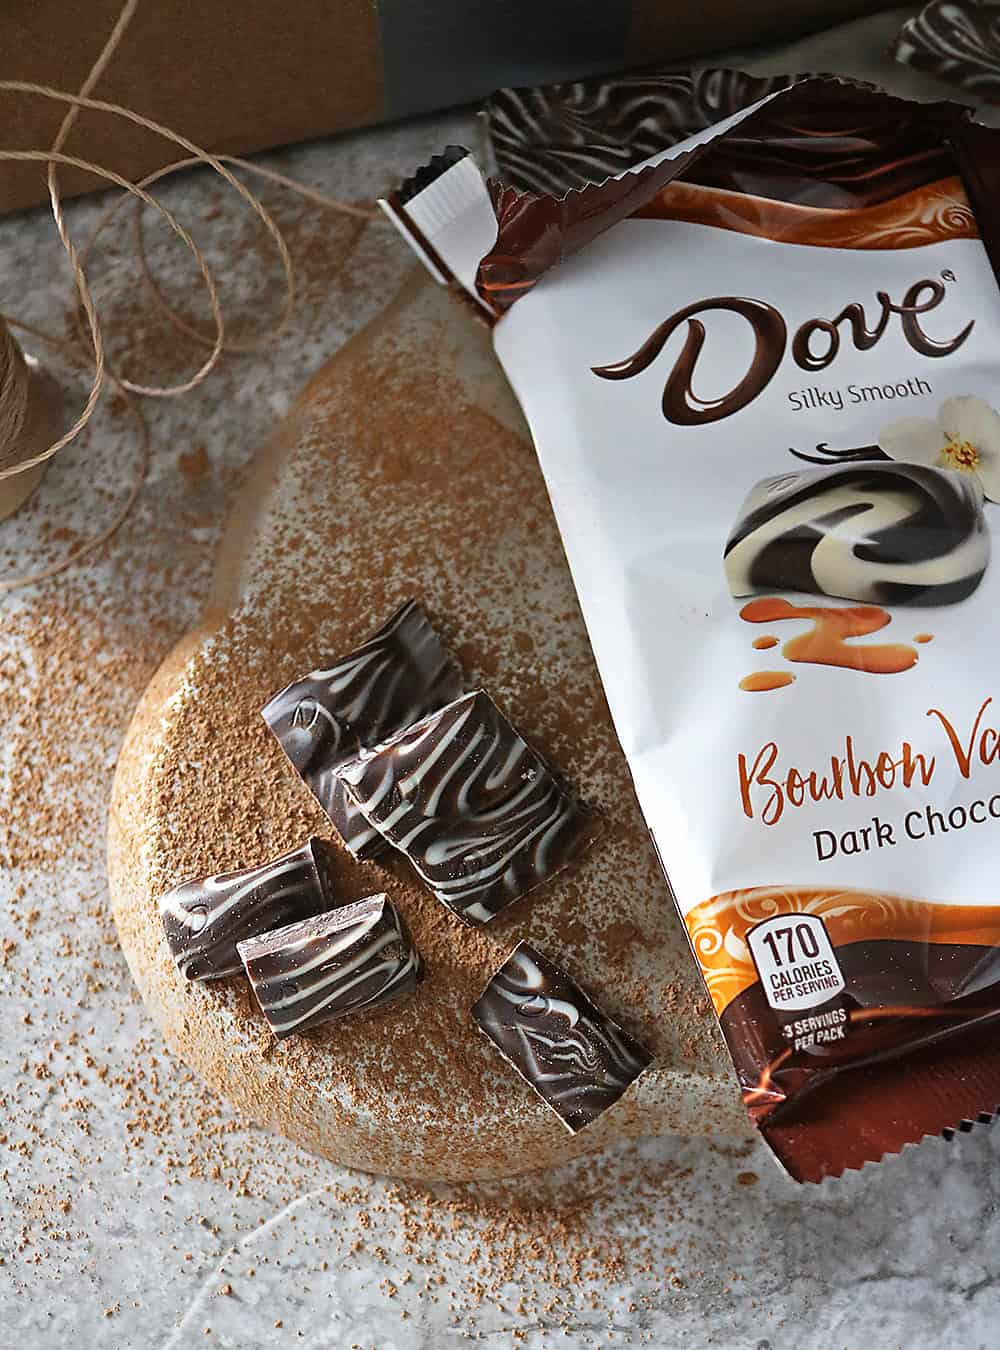 Delicious NEW DOVE Bourbon Vanilla Chocolate Bar.